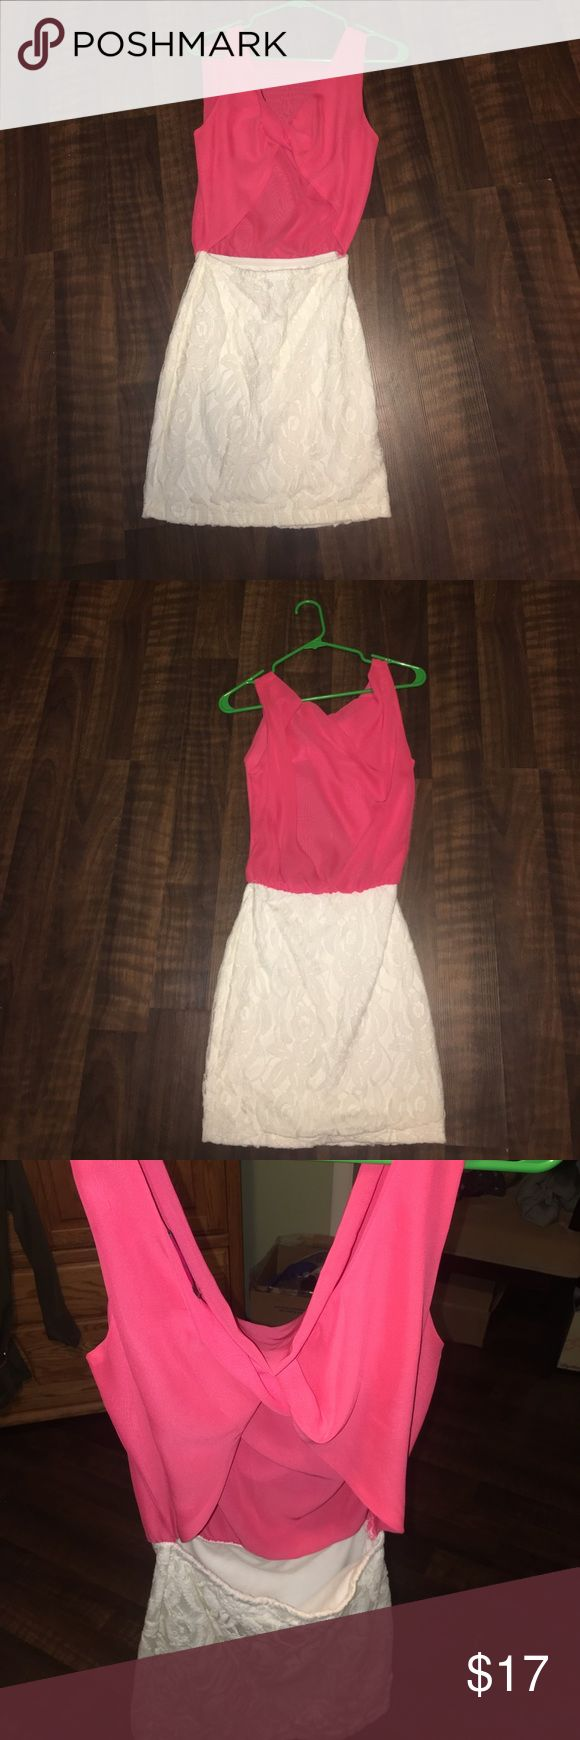 Coral and White Lace, Backless Bodycon Dress This dress is in excellent shape and has only been worn once. It is made of 100% Polyester. Don't miss out on this amazing dress, it's always been one of my favorites. Body Central Dresses Mini